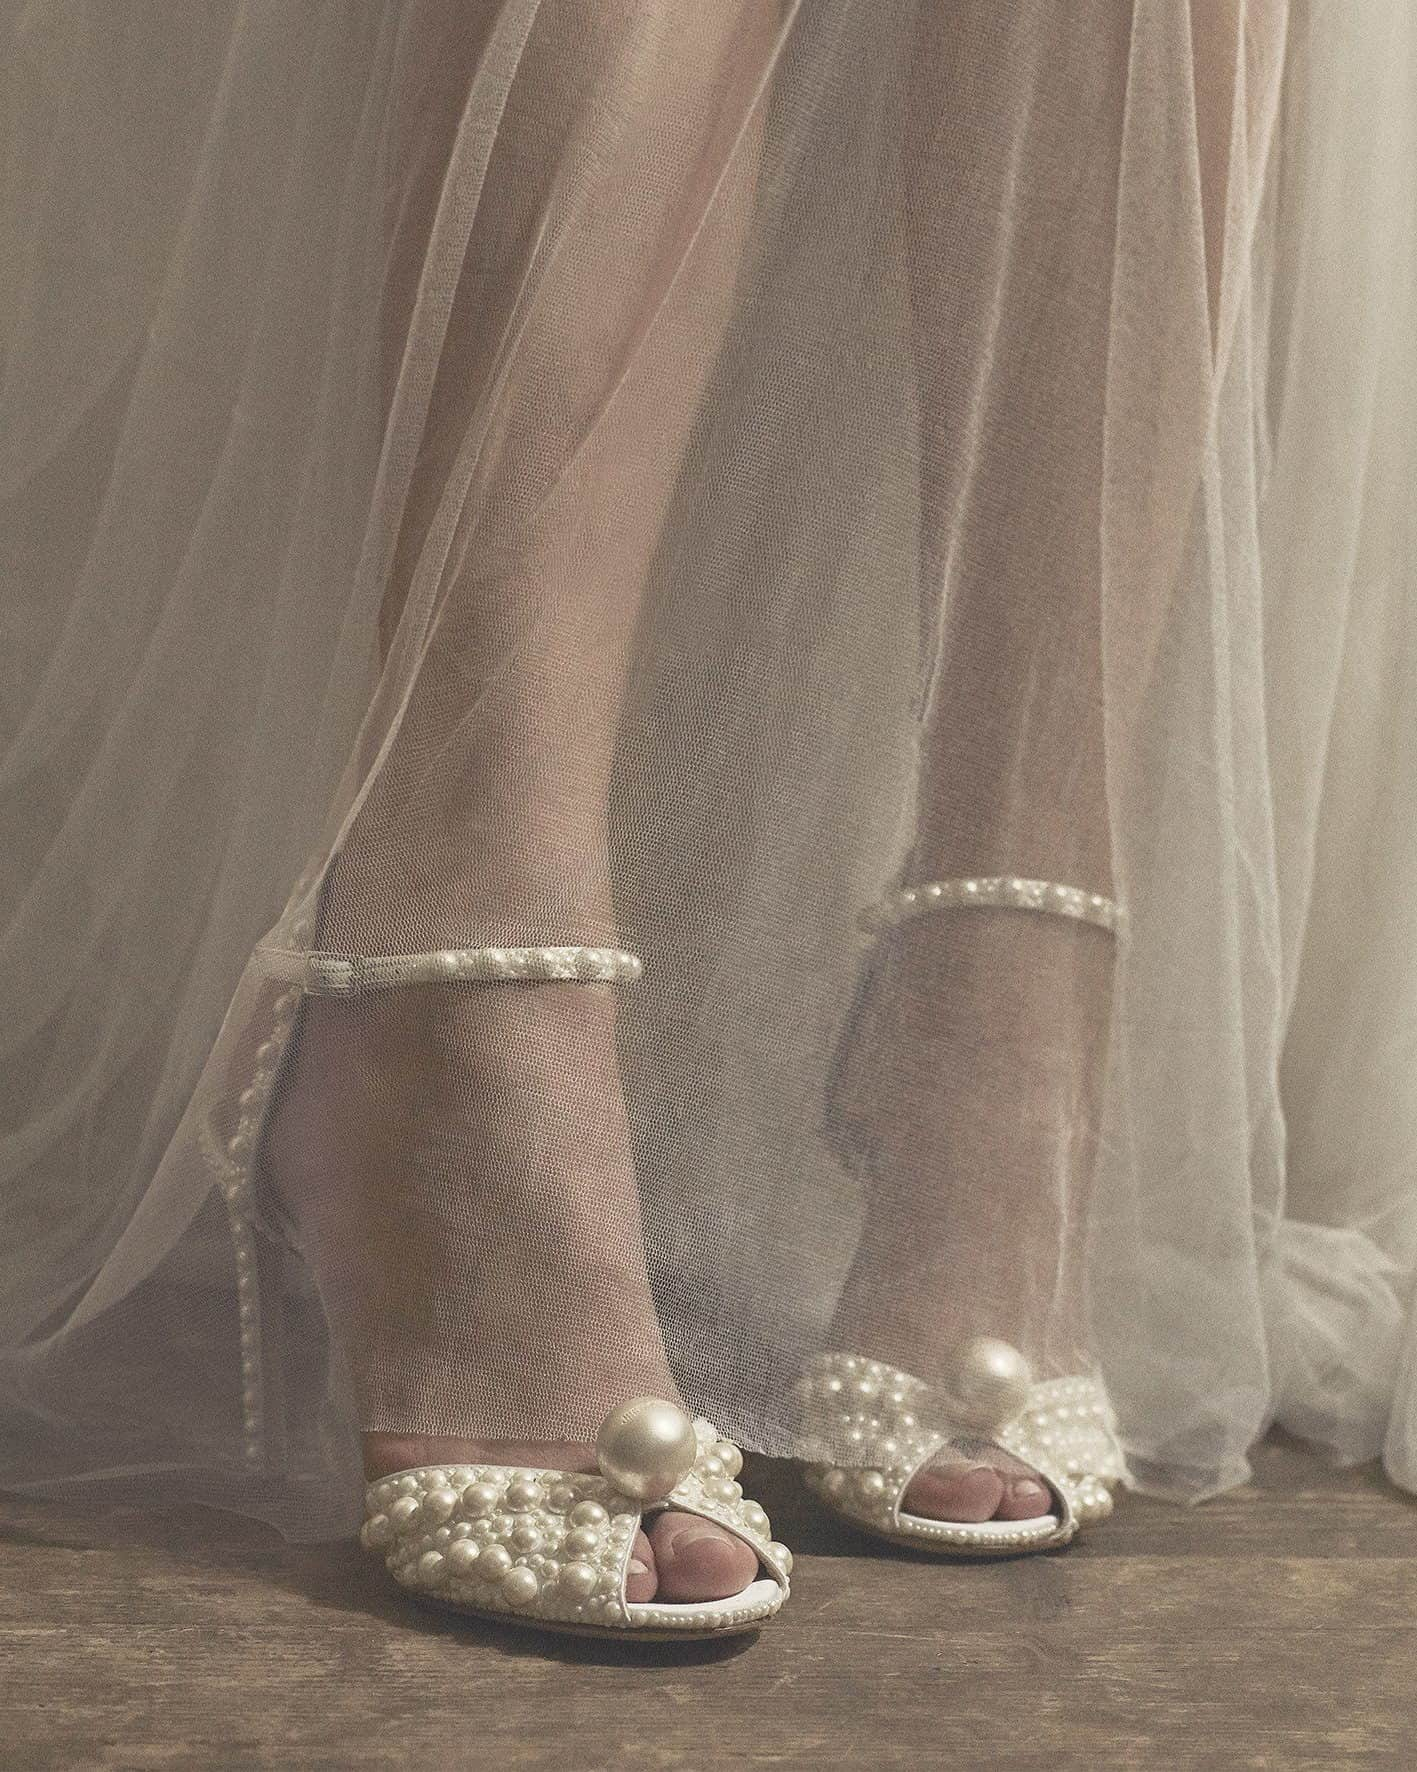 bride's wedding shoes with pearls